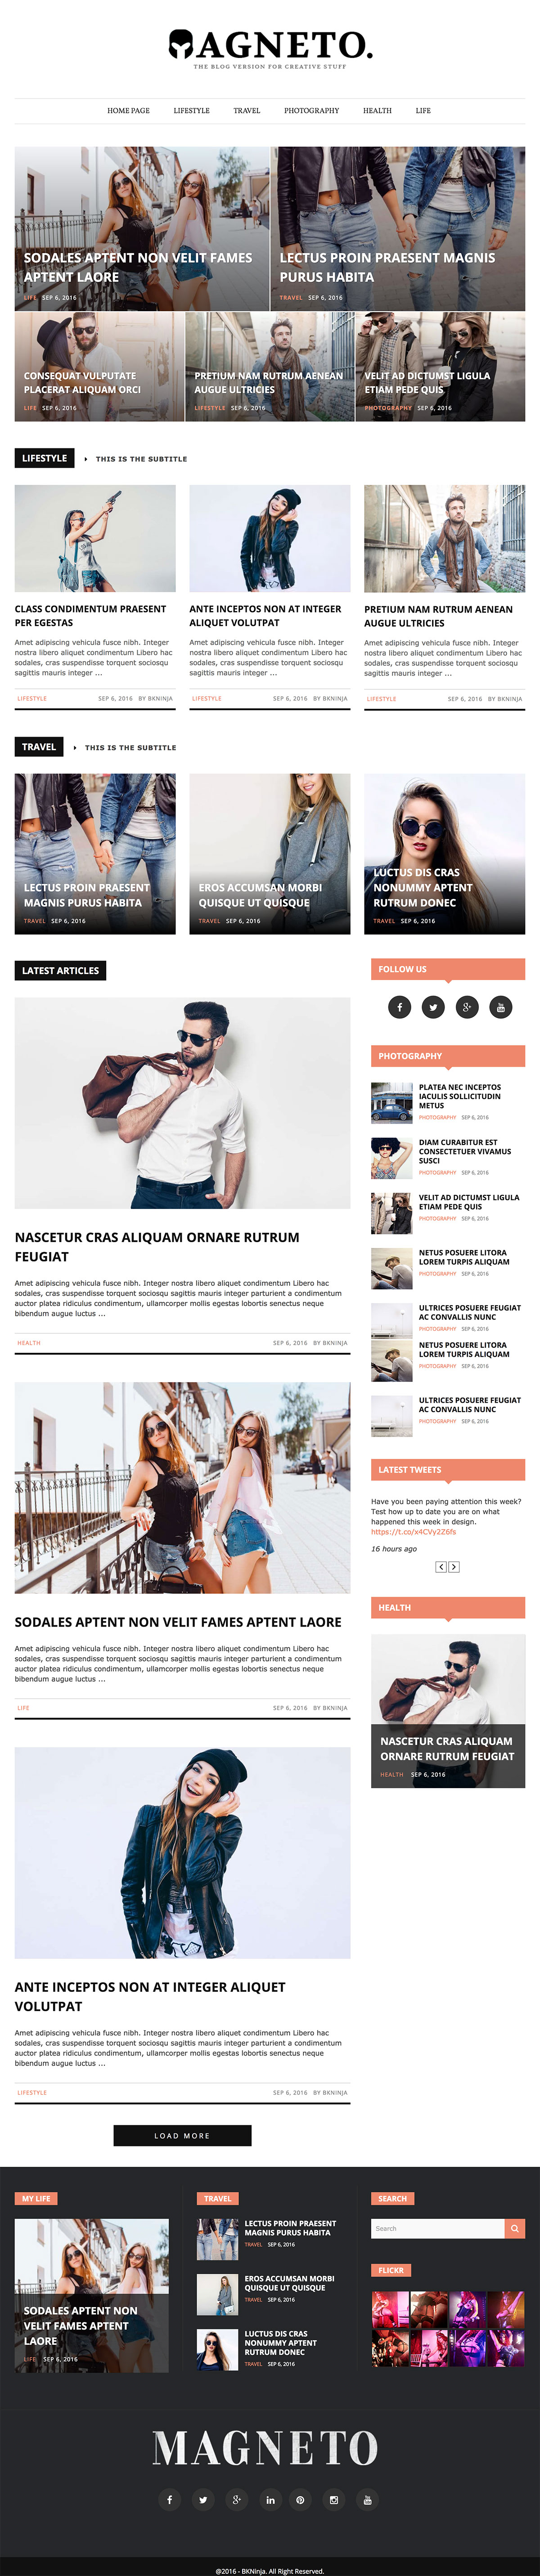 Magneto - Newspaper WordPress Theme